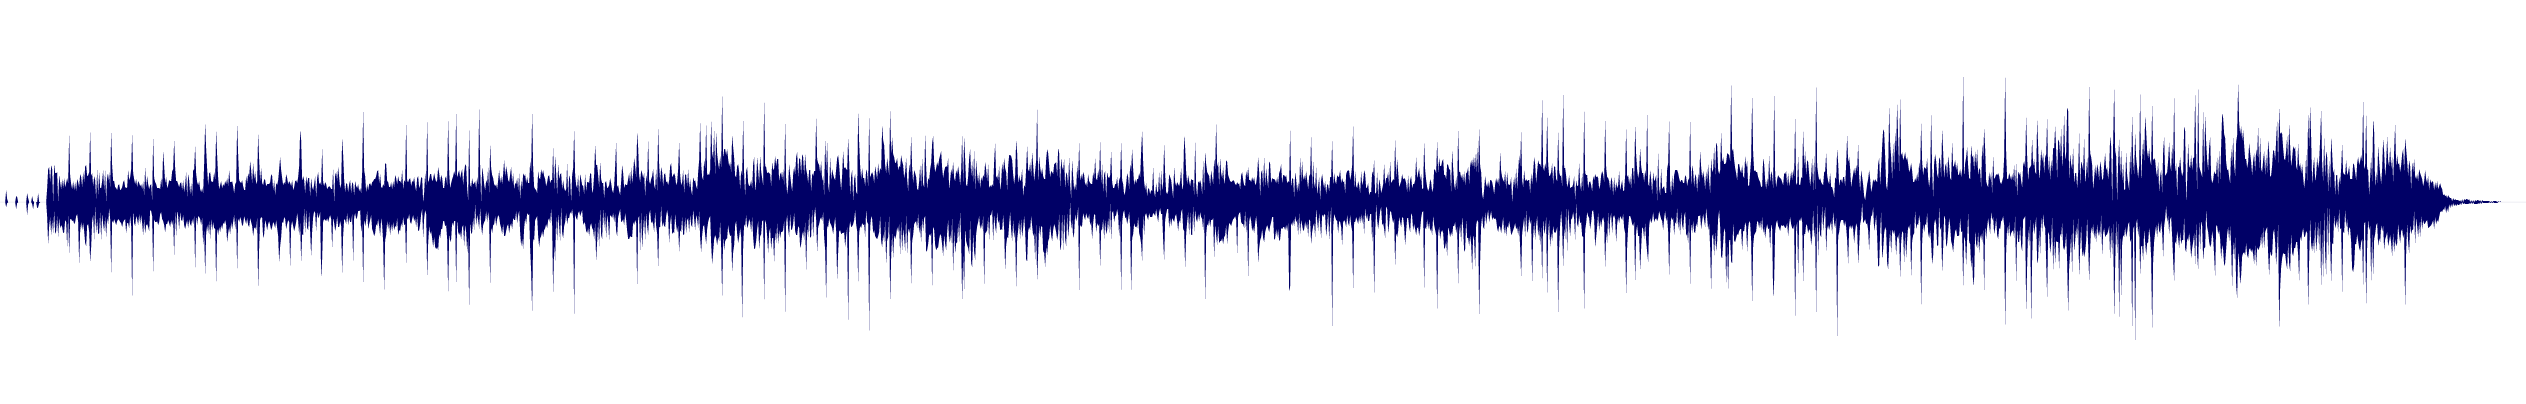 waveform of track #101061